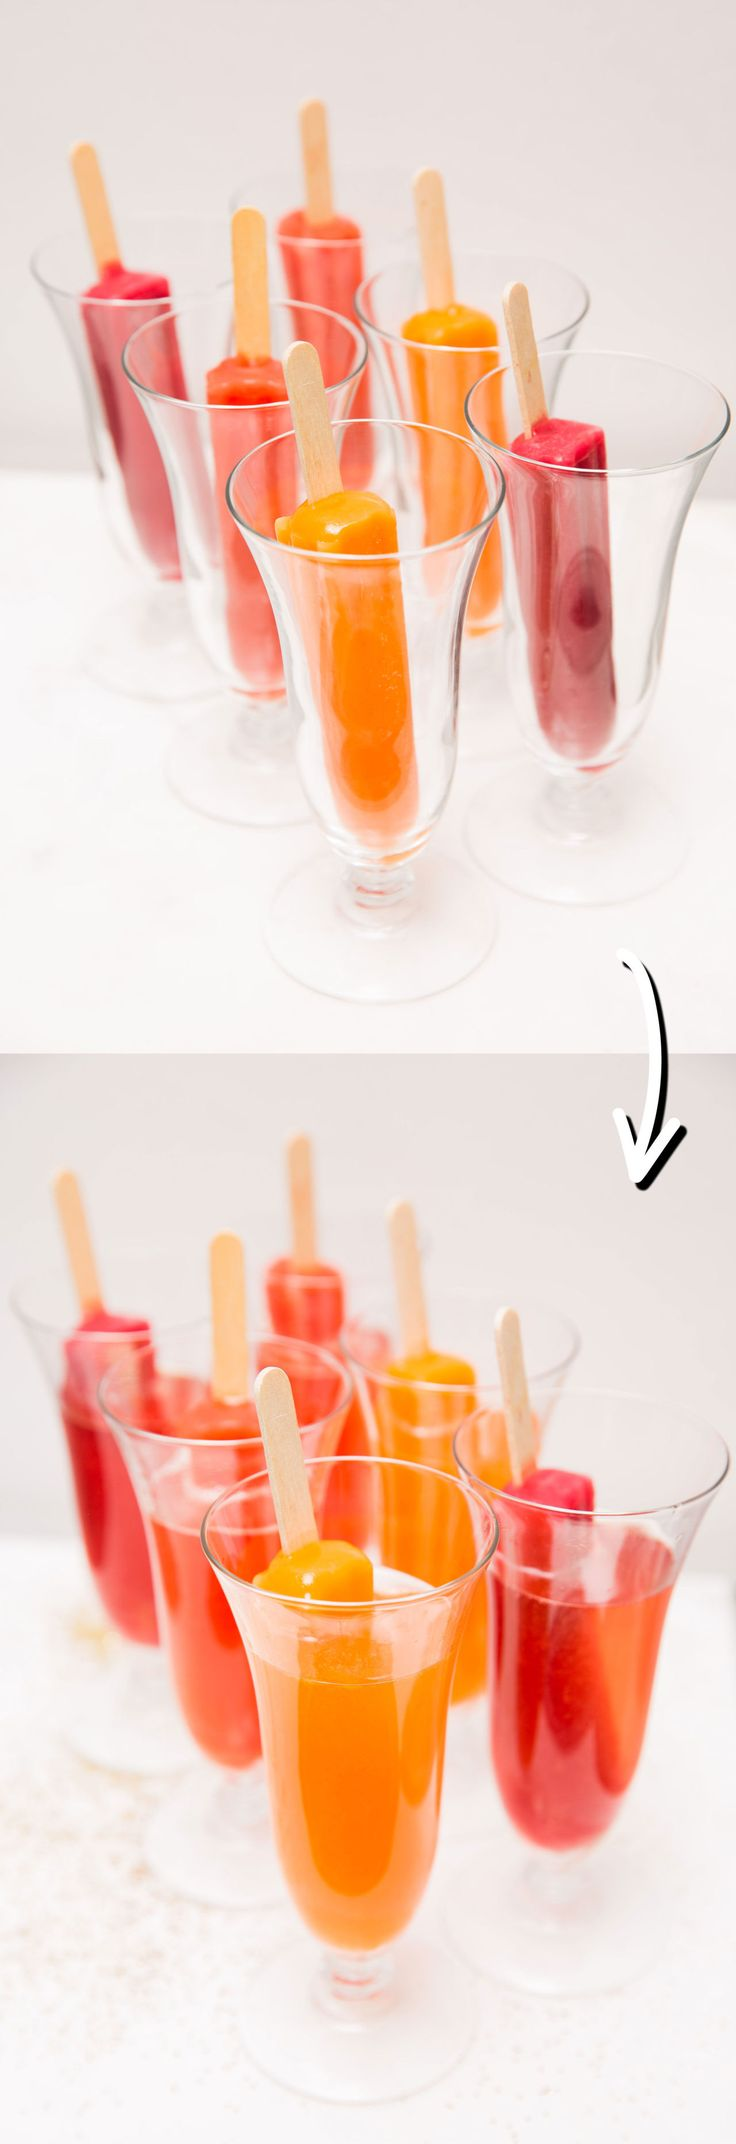 ICE POP CHAMPAGNE DRINKS: Cosmopolitan.com rounded up the best ways to make fun and festive champagne cocktails for your New Year's Eve celebrations. Here you'll find clever new ways to enjoy the bubbly drink, like this ice pop cocktail idea. Click through for the directions, and for more easy champagne and cocktail ideas and recipes you need to try!